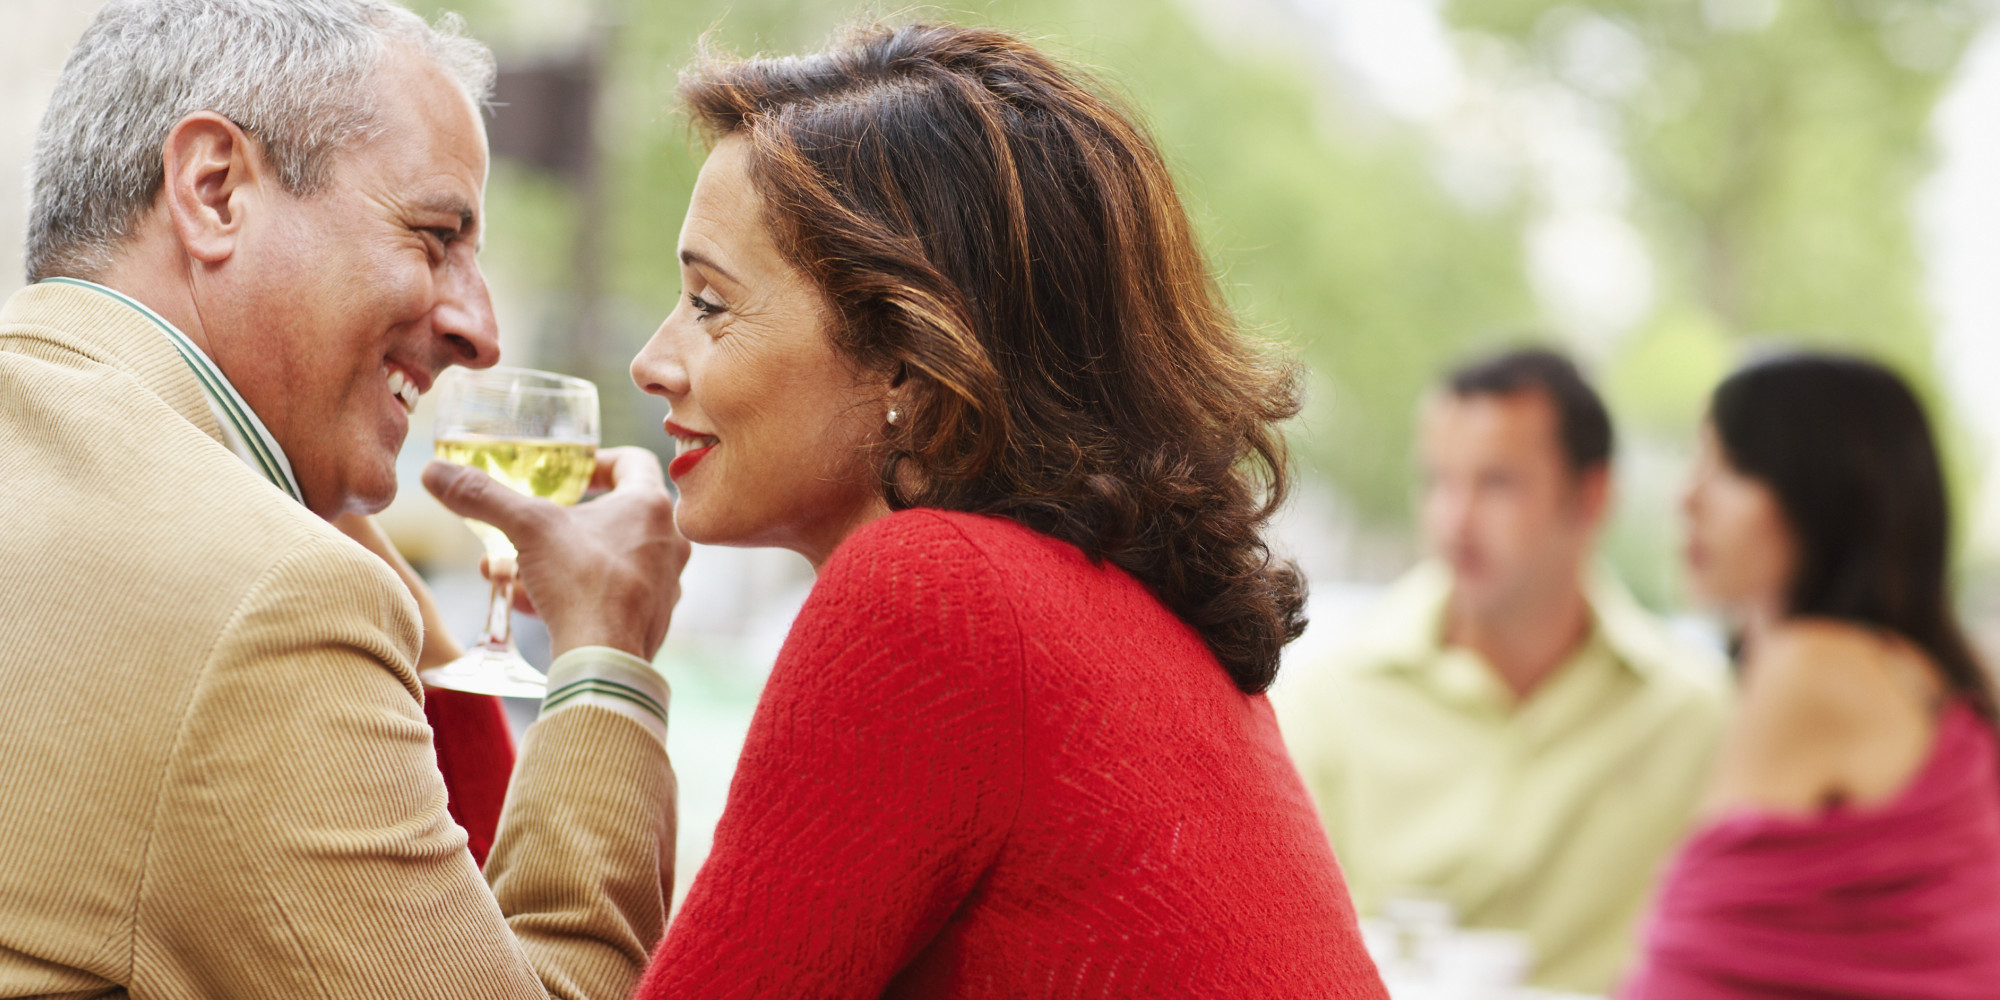 tips for dating a separated woman Learn 10 important pieces of advice from women who've been divorced on how to get divorced plus, get tips for coping financially and emotionally after divorce  12 expert tips for dating after.